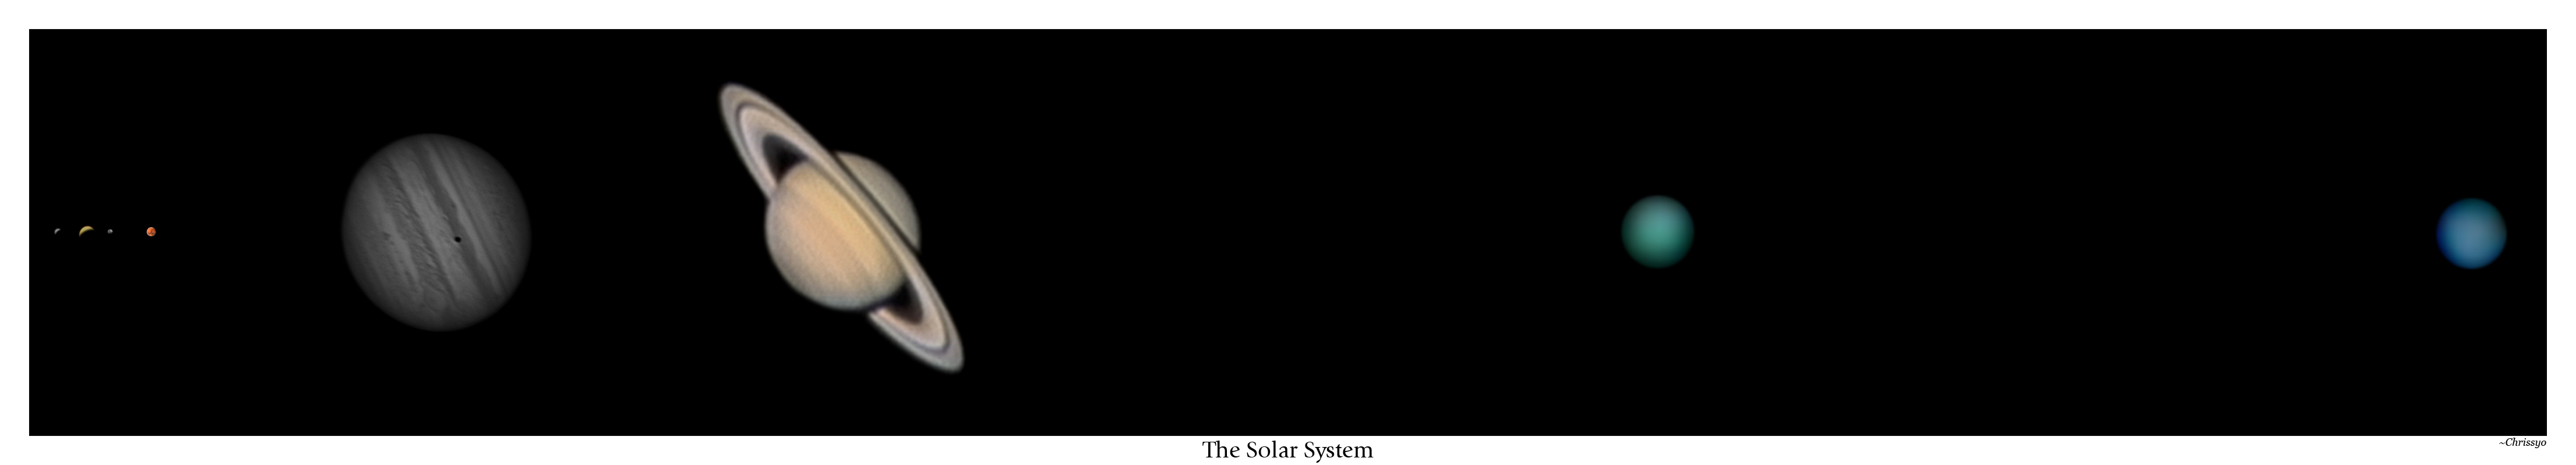 The Solar System to scale by Chrissyo